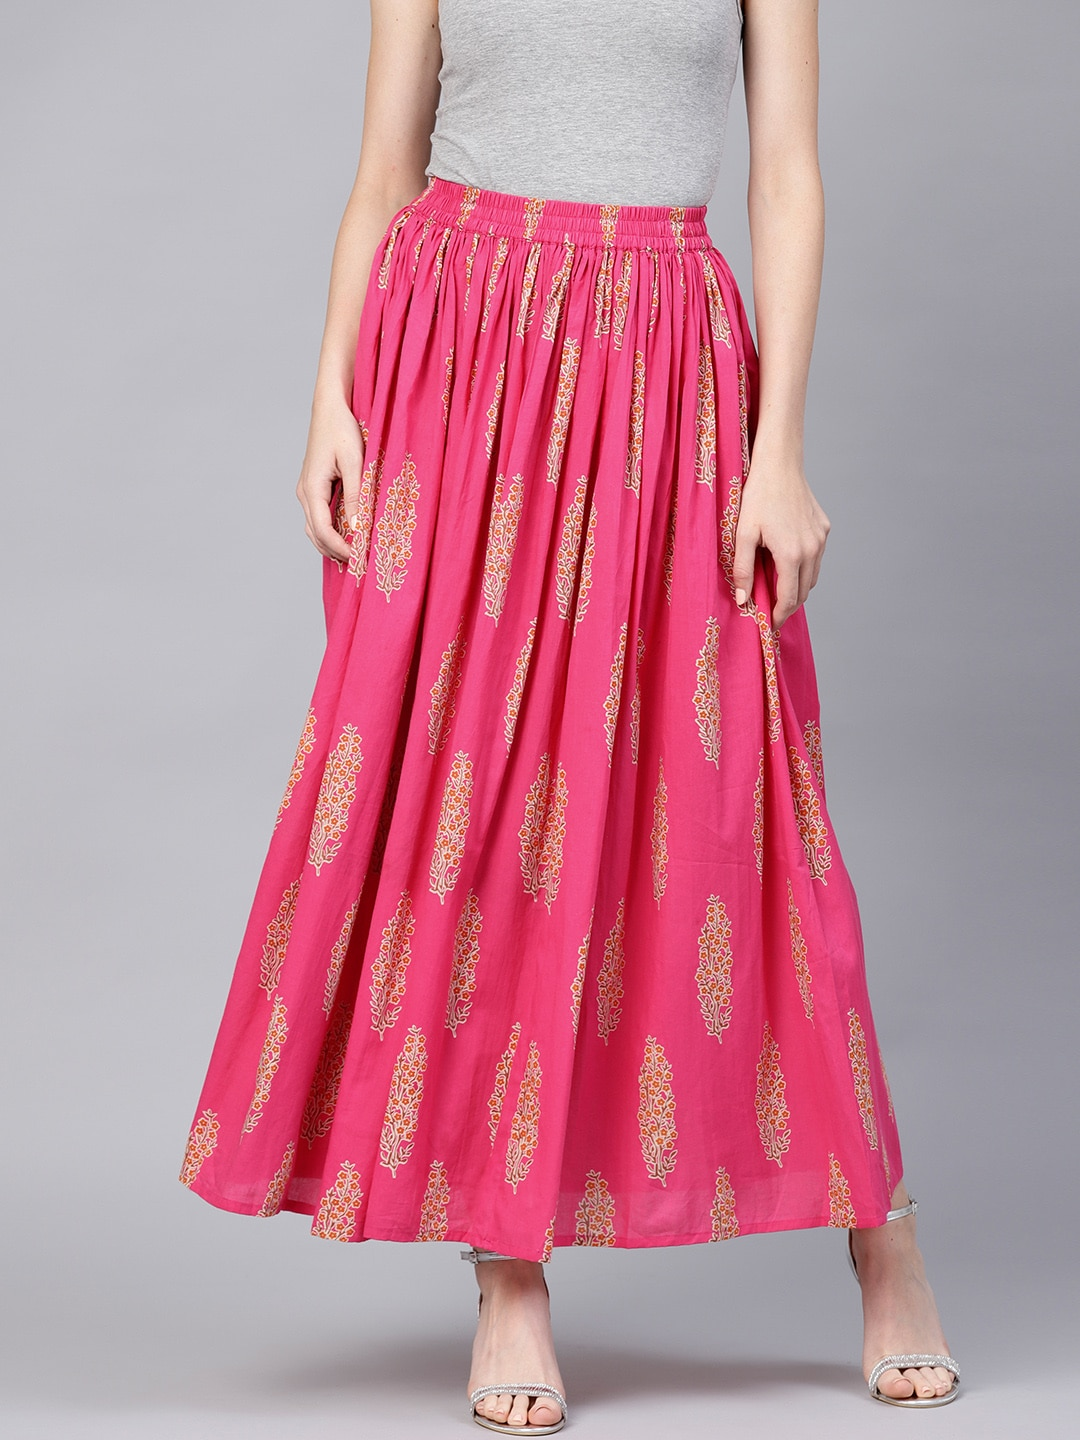 6a9270ff0 Indian Ethnic Skirts Online Shopping | Saddha